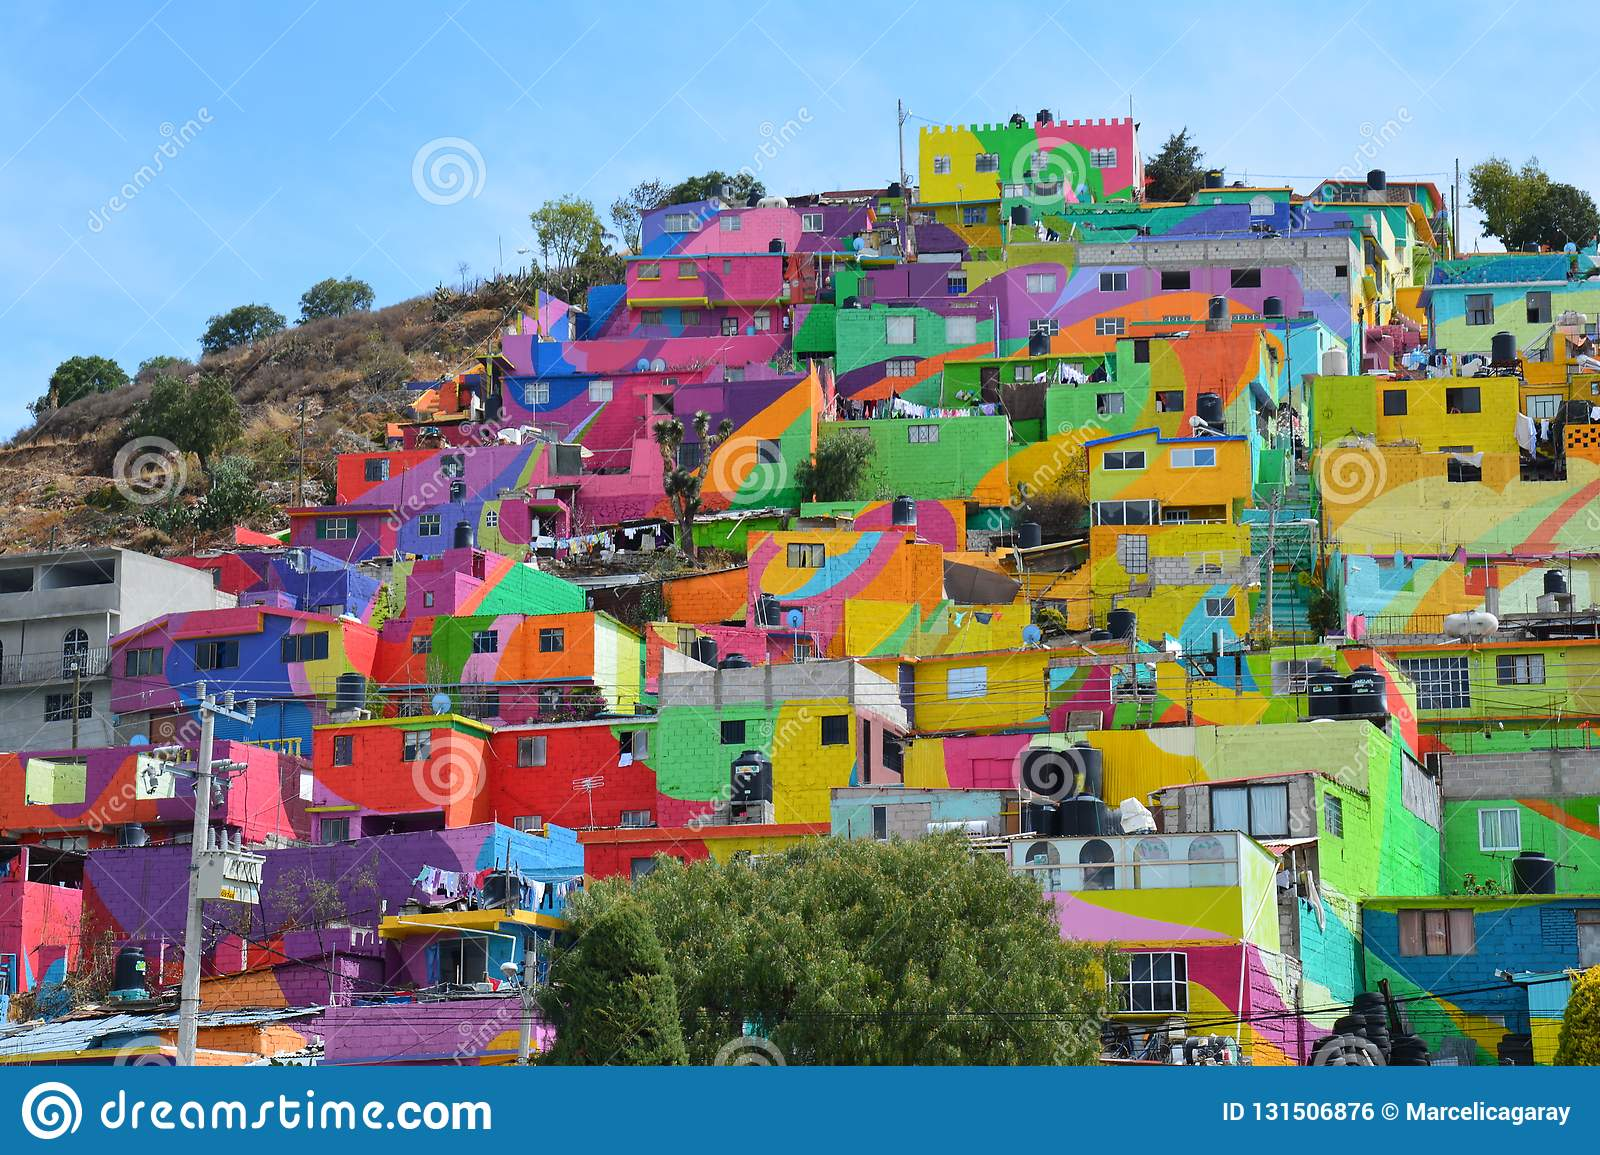 Amazing Colorful Houses Pachuca Mexico Stock Photo Image Of Mexico